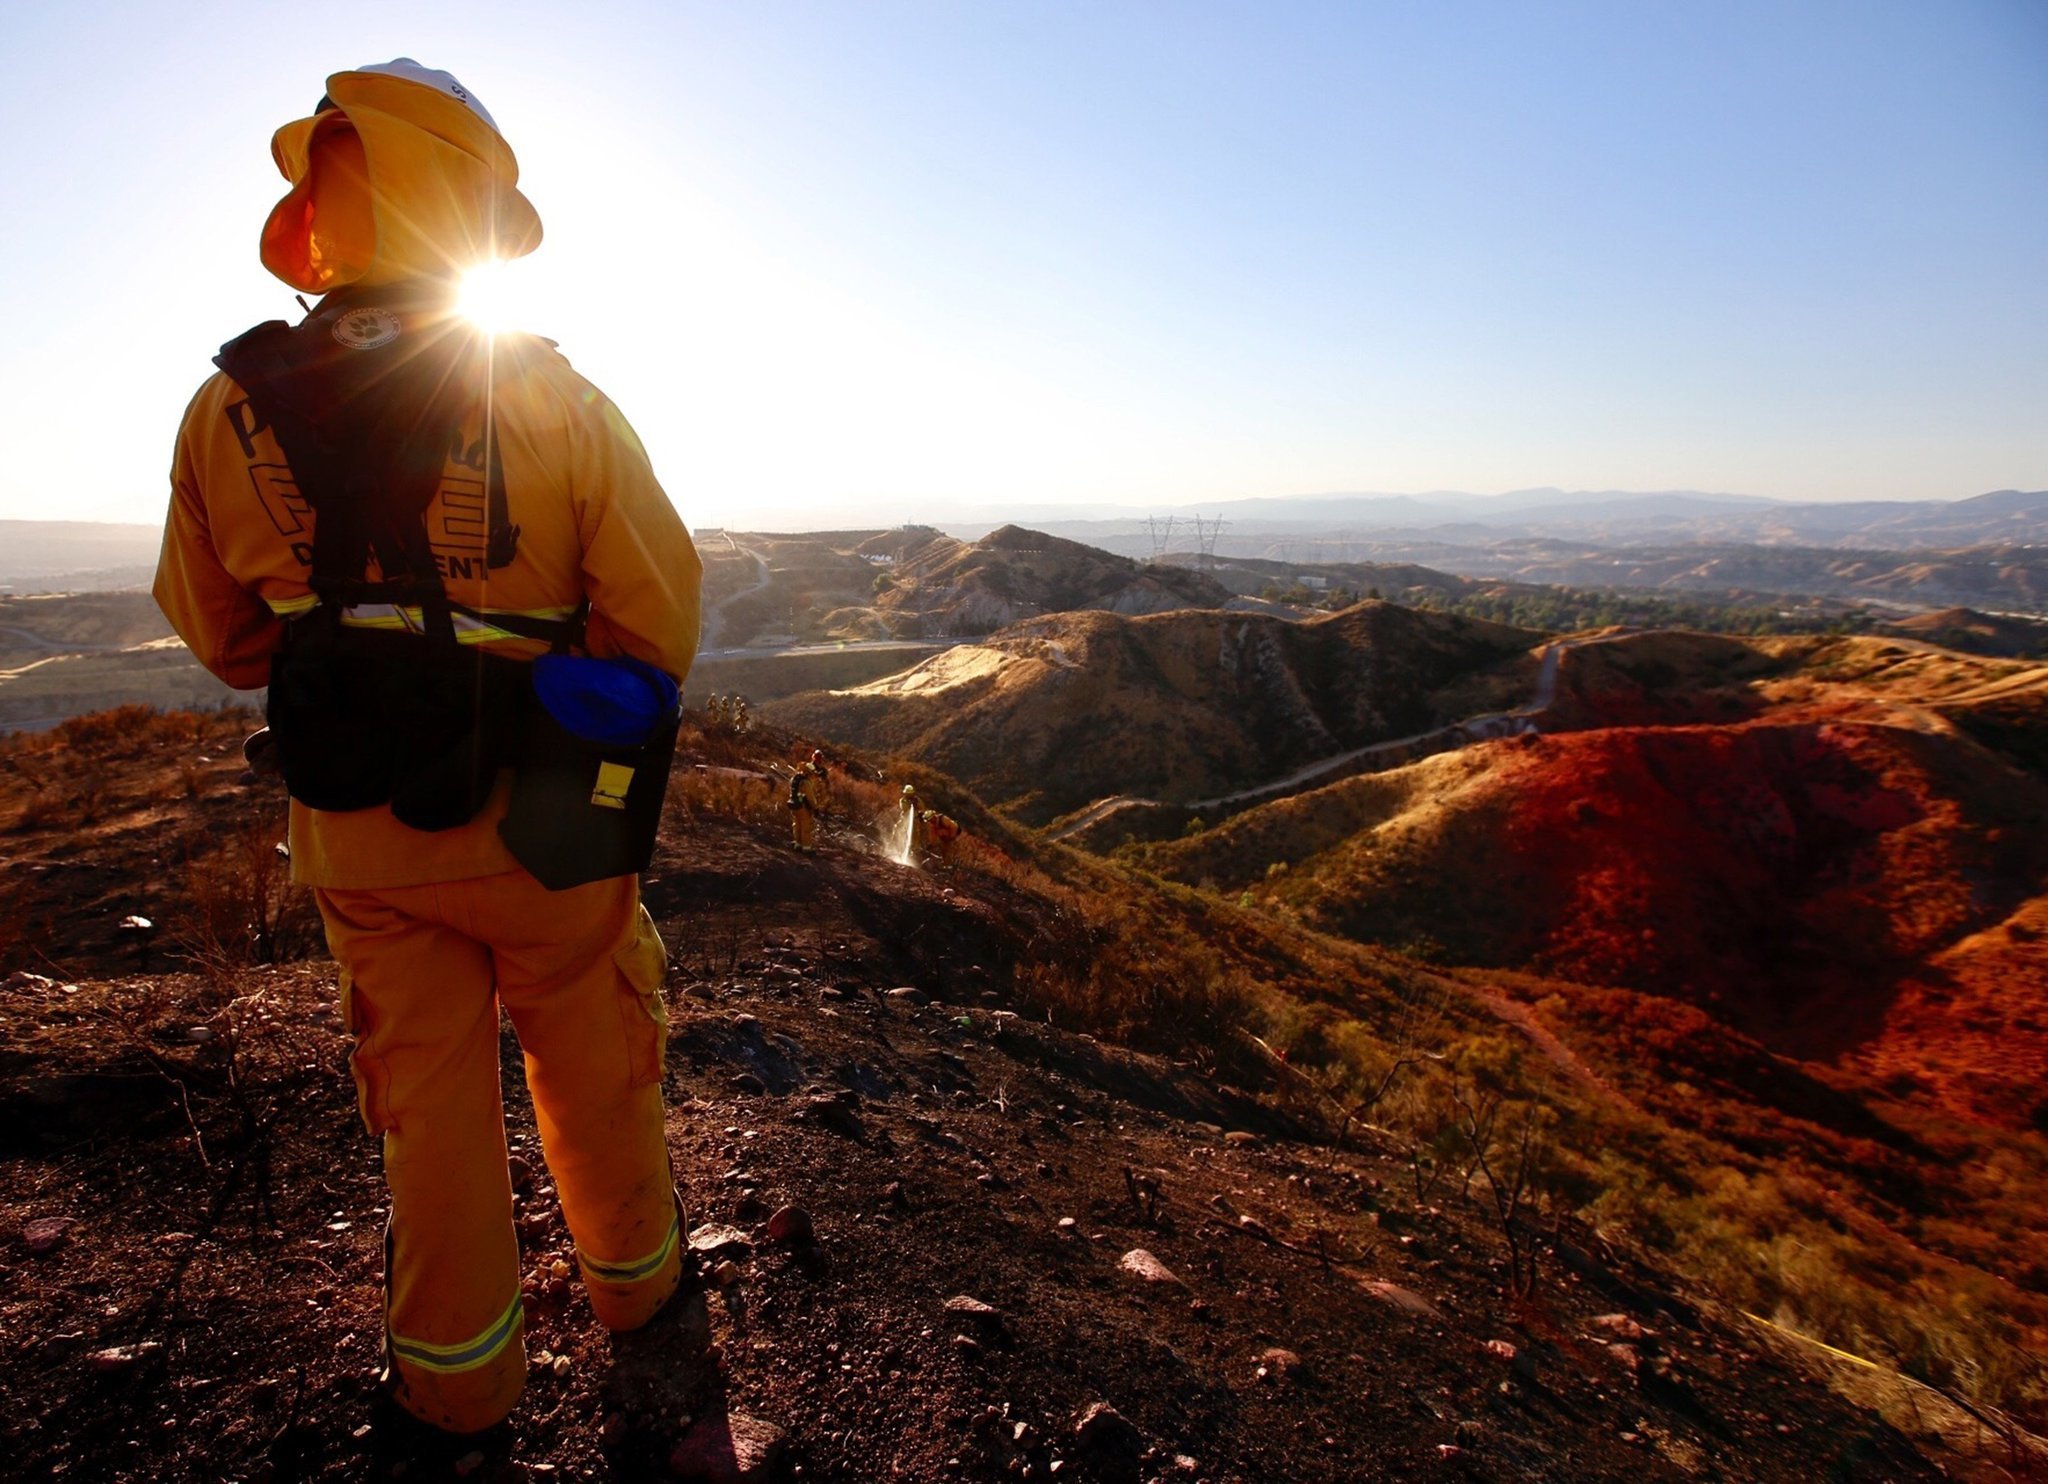 A battalion chief with the Pasadena Fire Department watches his crew. Firefighters were battling a fast-moving brush fire in the Santa Clarita area that burned 760 acres and prompted the shutdown of Highway 14 in both directions June 25, 2017.